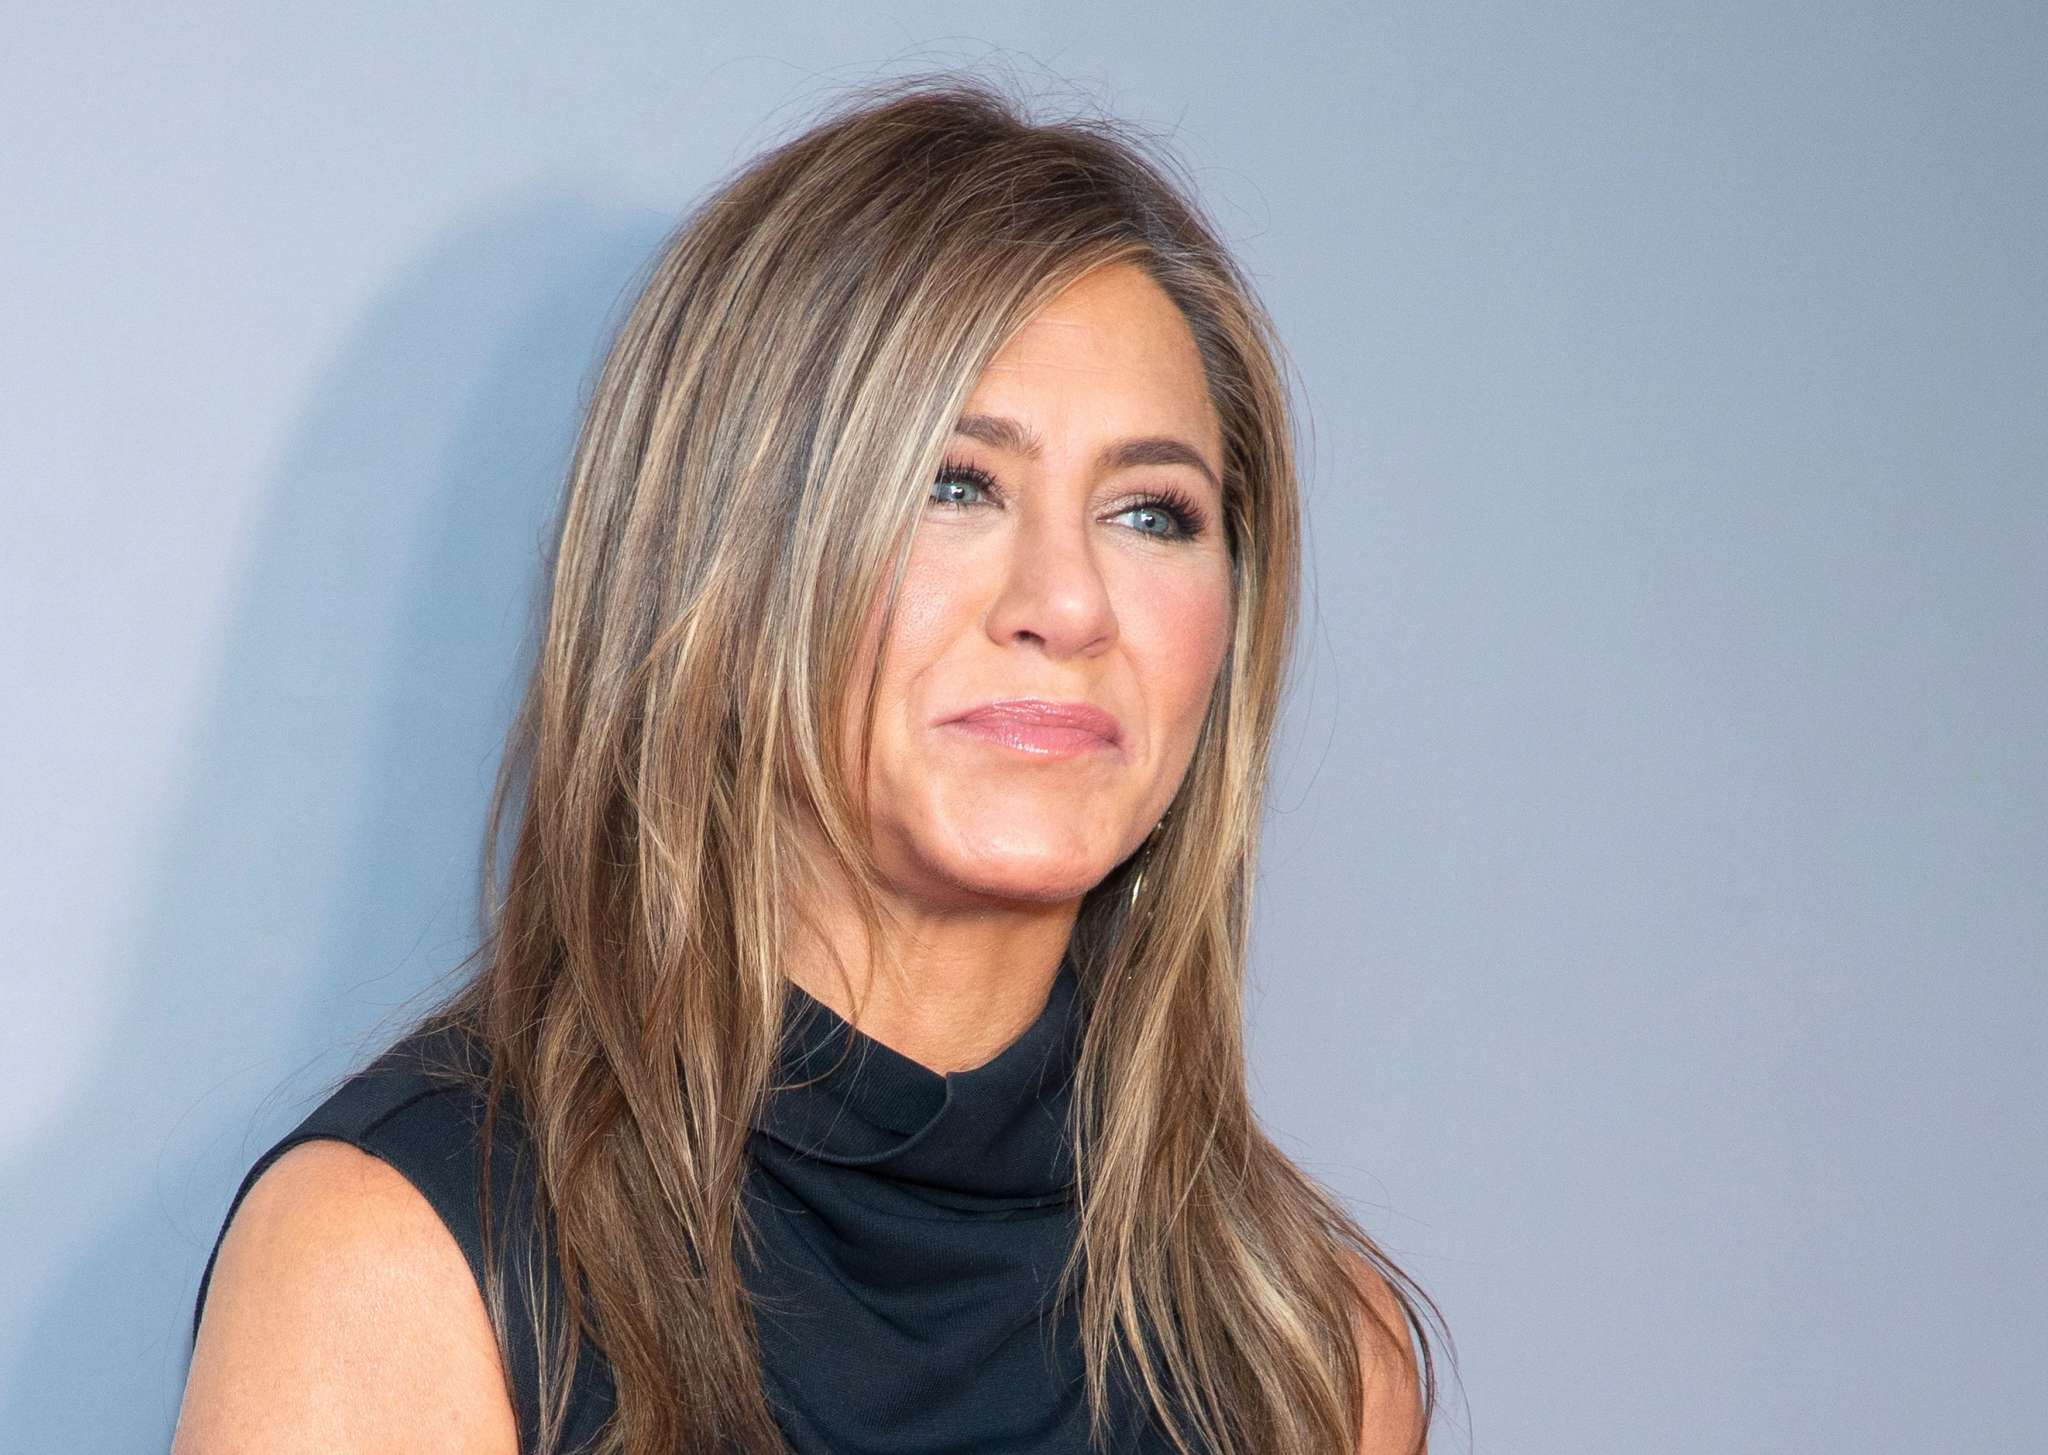 jennifer-aniston-reveals-she-likes-to-re-watch-friends-episodes-and-bloopers